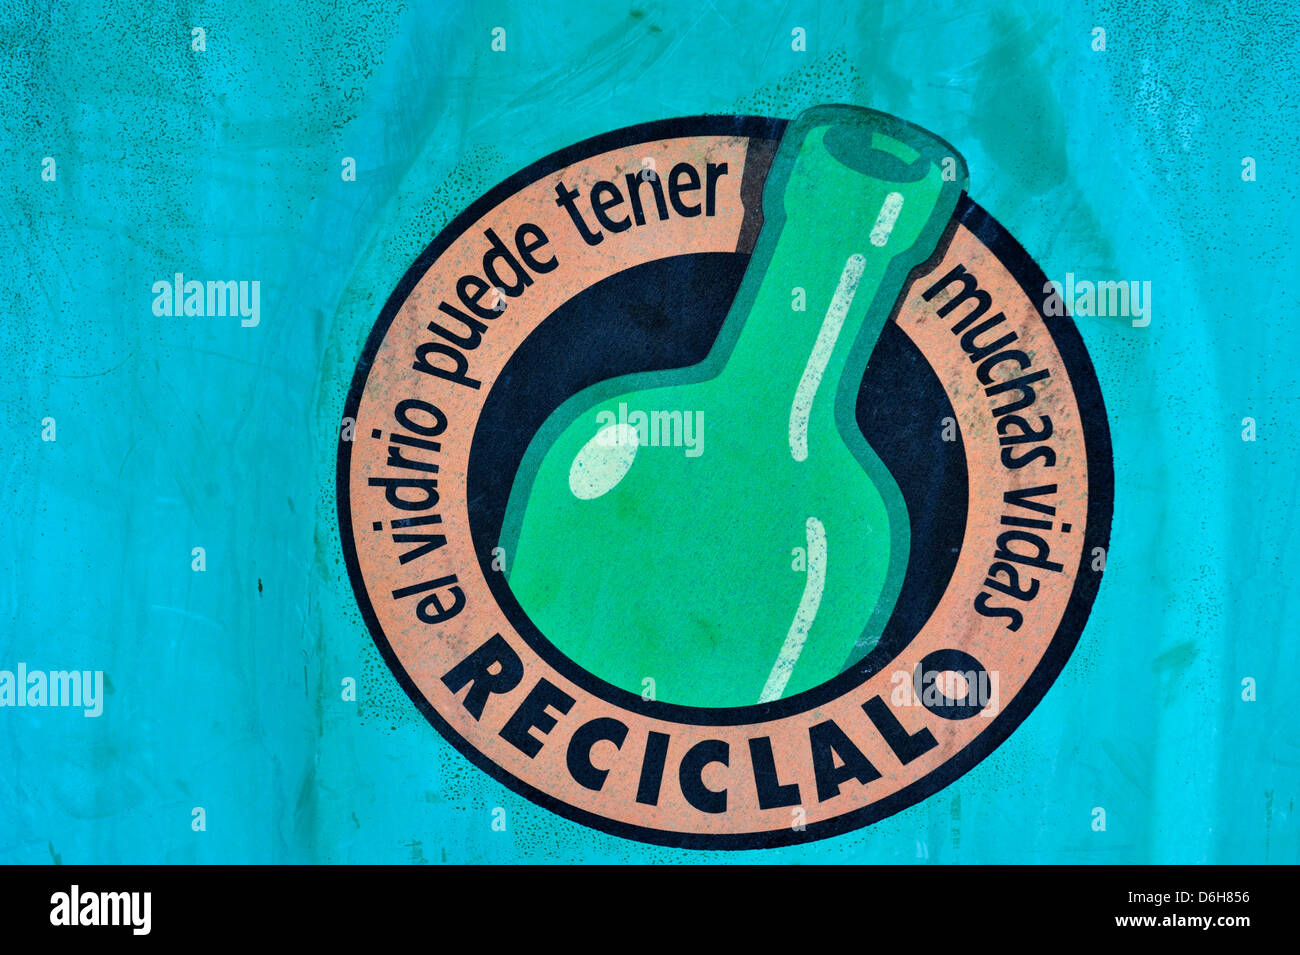 An image on a glass recycling bin in Lanzarote. - Stock Image